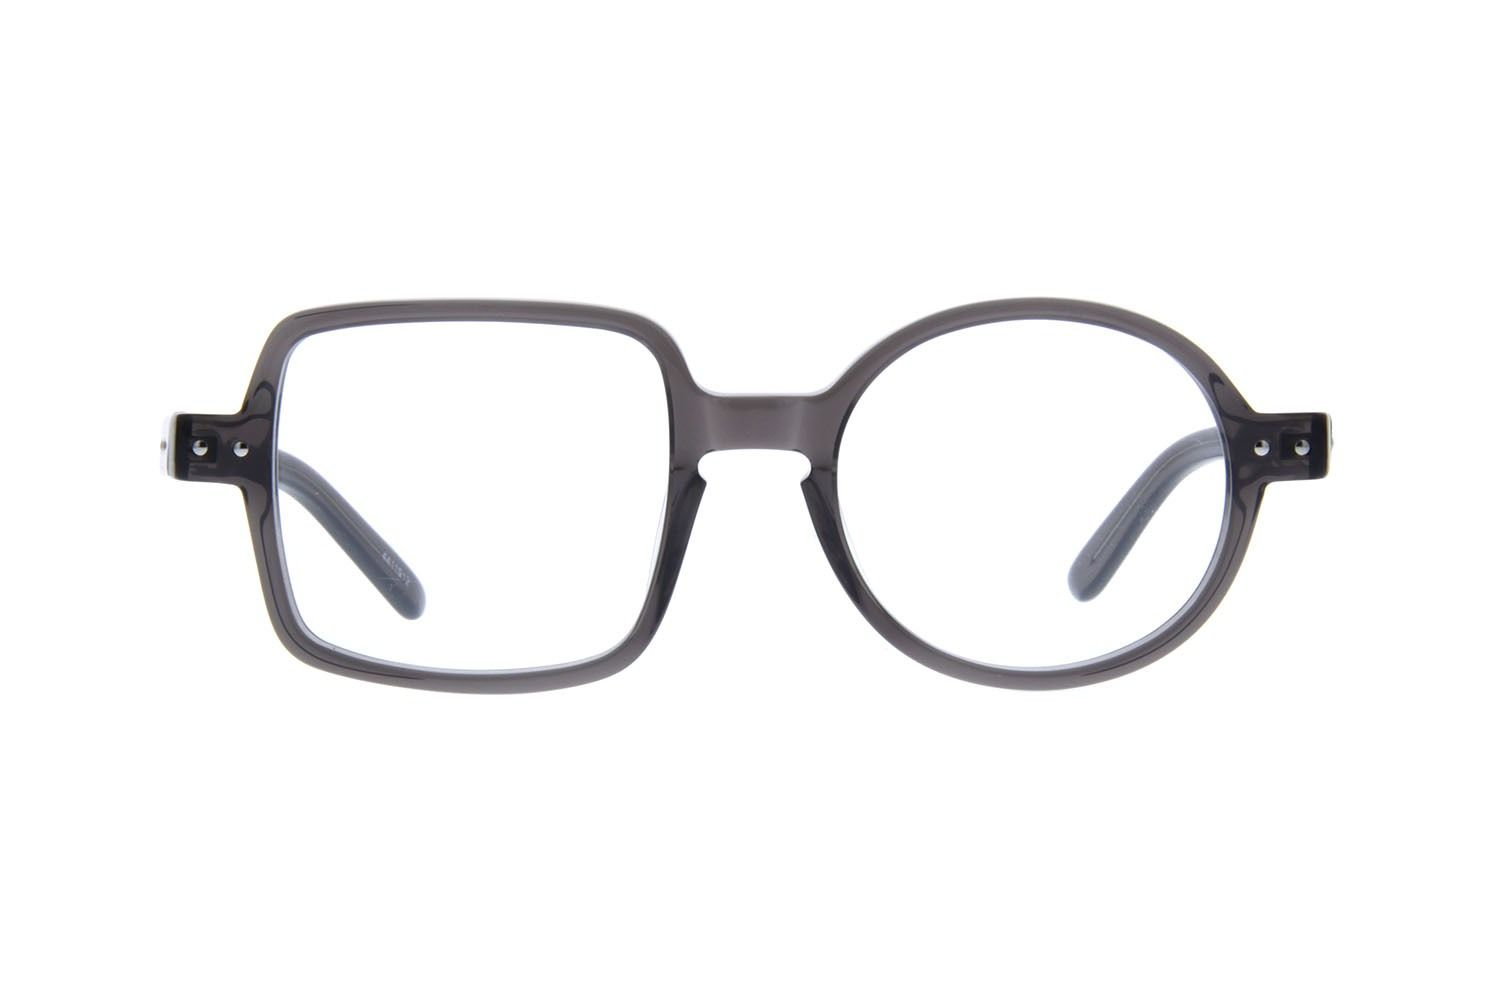 27fb12070d1 Zenni Round Prescription Eyeglasses Gray Tortoiseshell Plastic ...